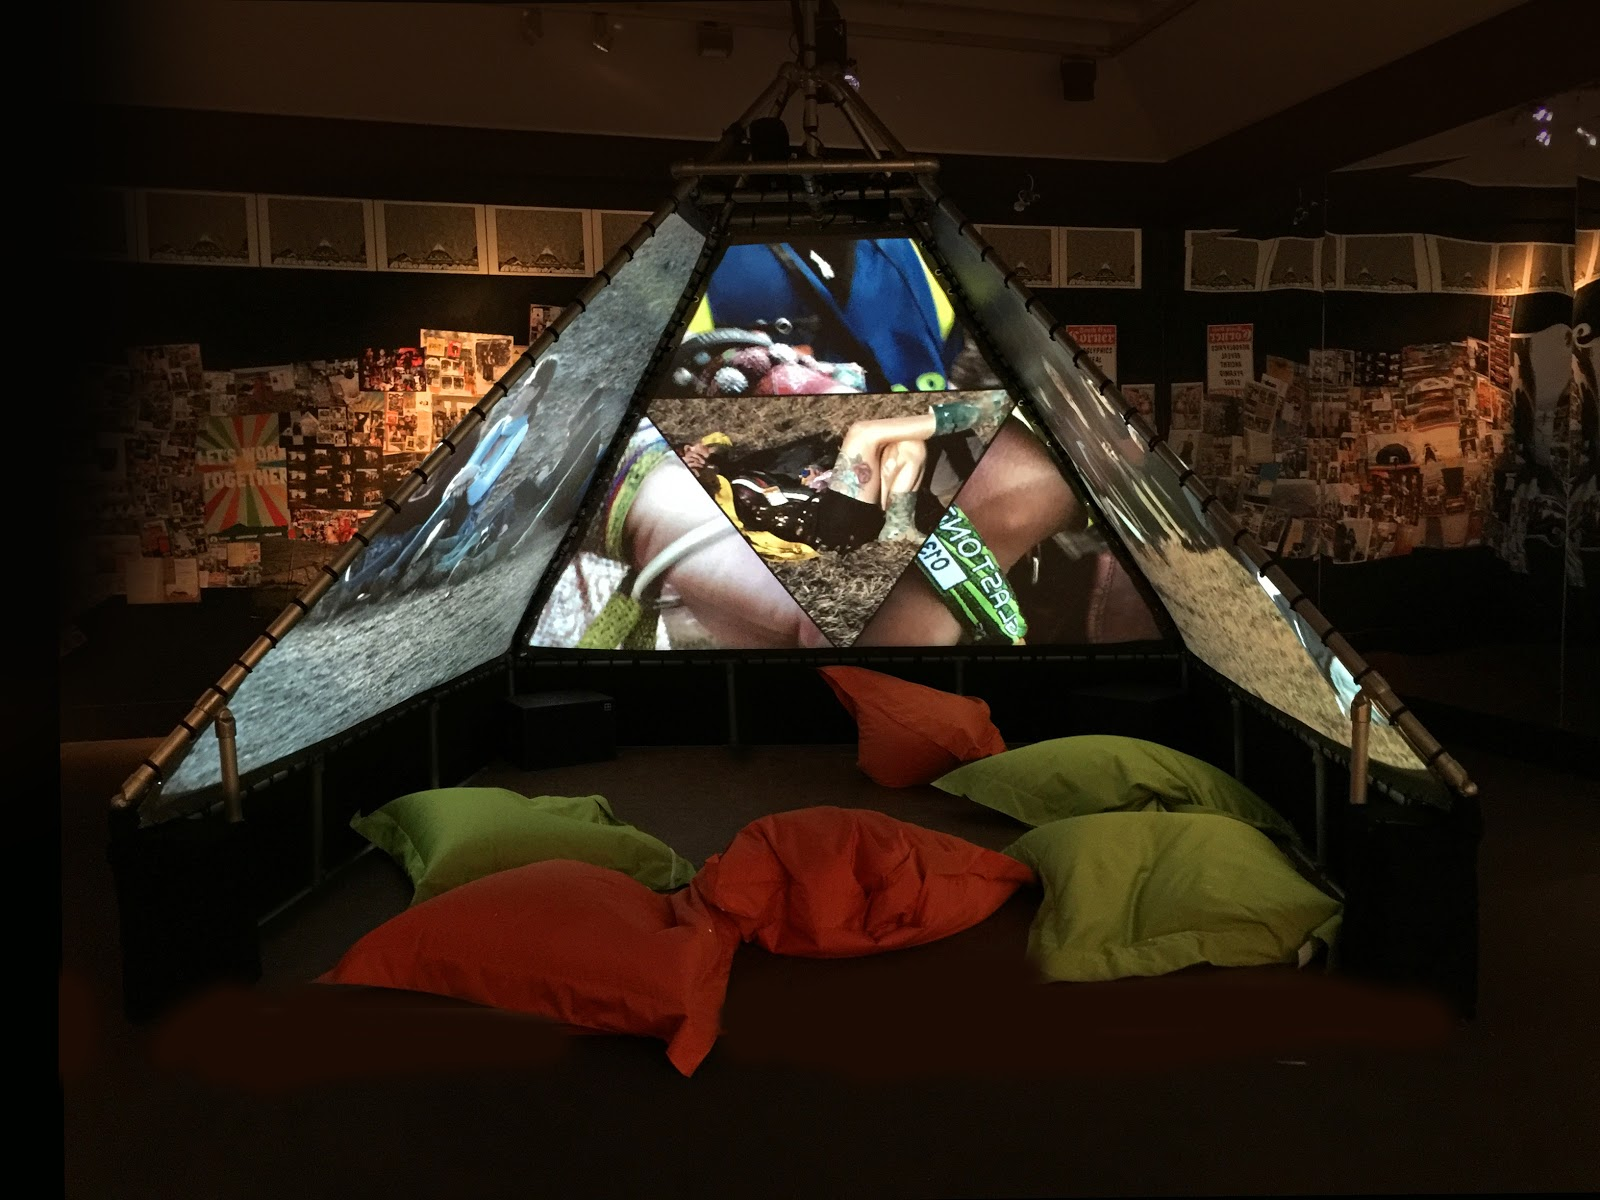 Glastonbury Footage Forms a Video Sculpture at London's V&A